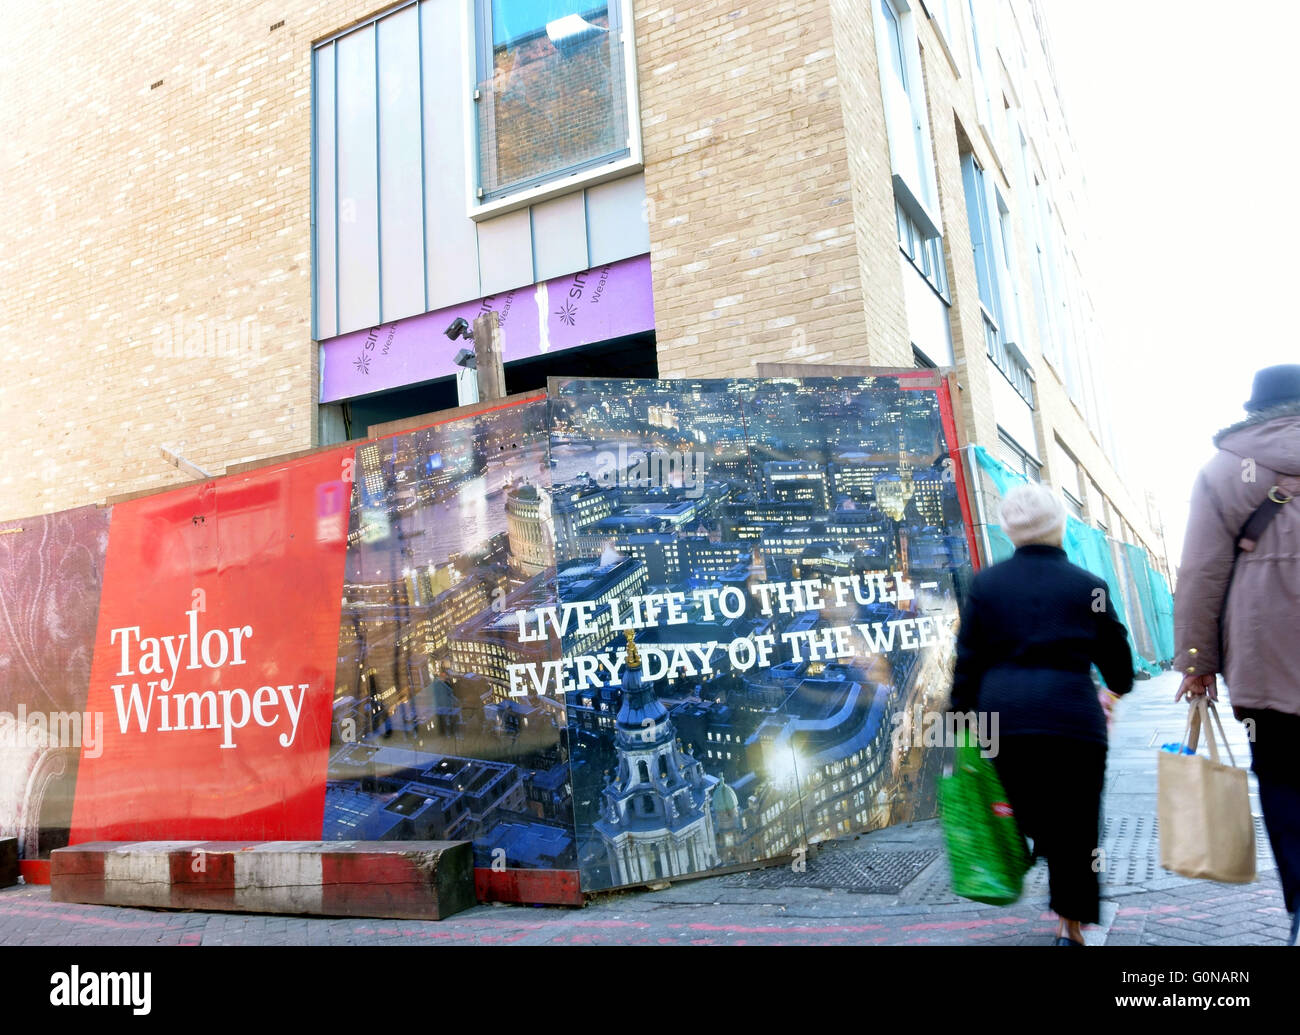 Gentrification in Dalston, East London - new development by Taylor Wimpy in Kingsland High Street - Stock Image